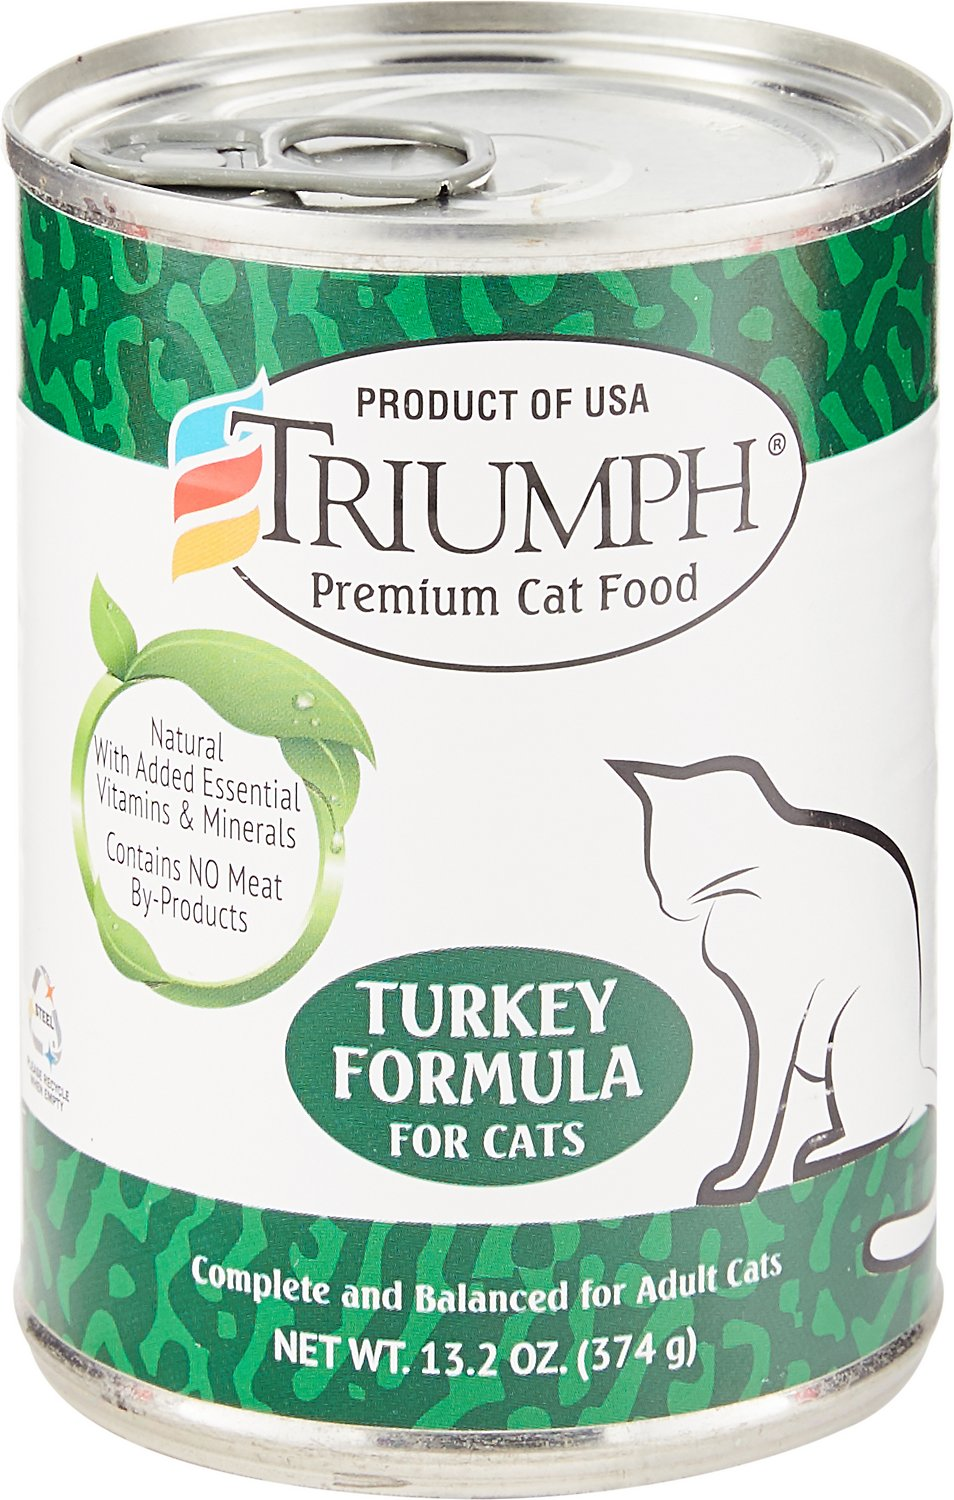 Triumph Turkey Formula Canned Cat Food, 13.2-oz